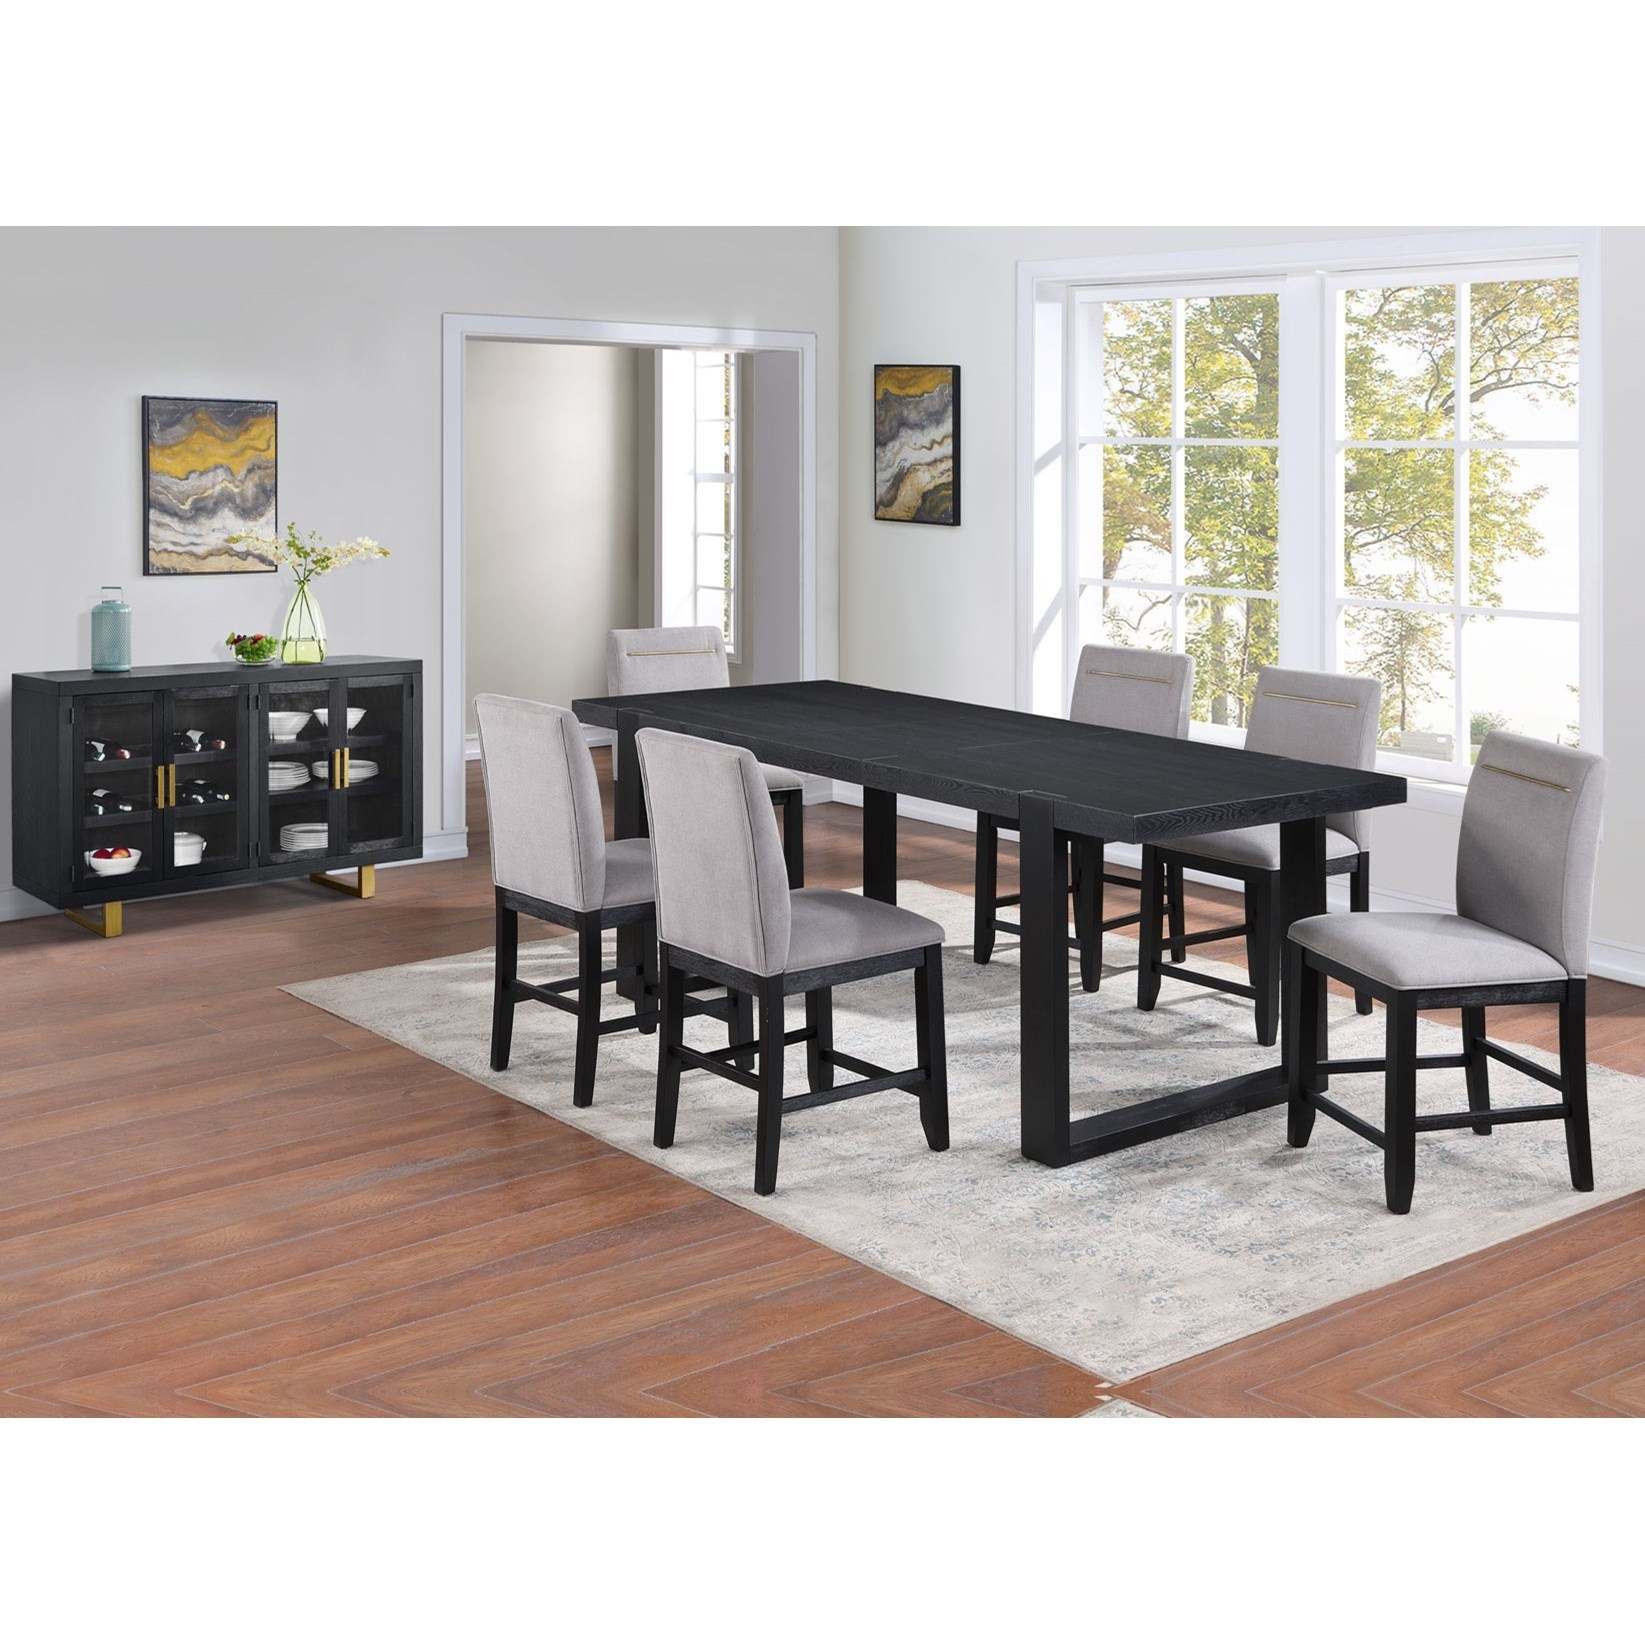 Yves Formal Dining Room Group  by Steve Silver at Standard Furniture